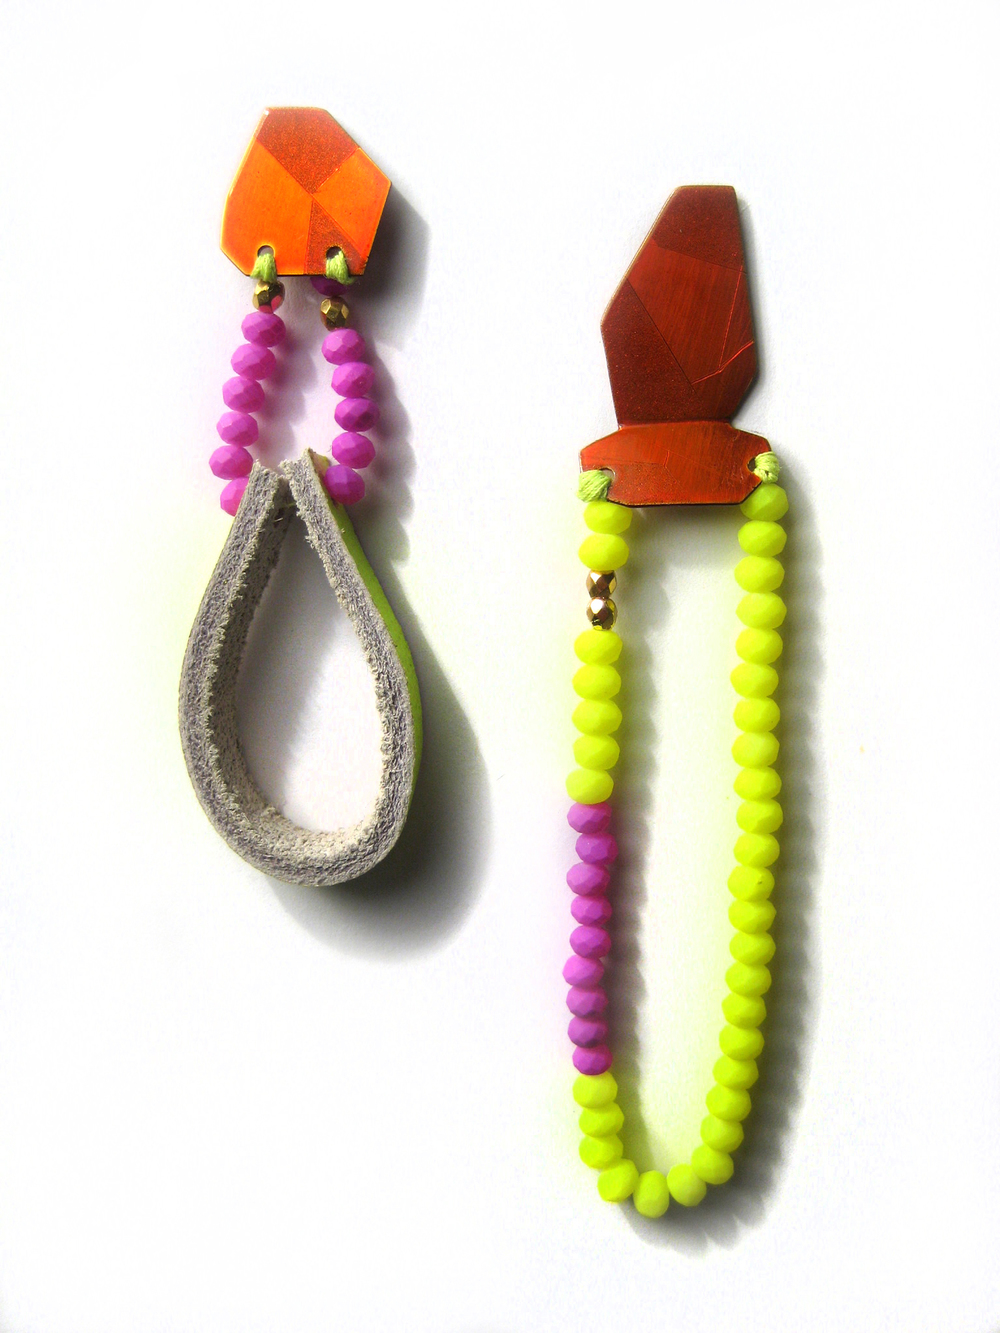 E7 Voegele, Stephanie small orange geometric shape with neon yellow and purple beads with yellow leather.jpg